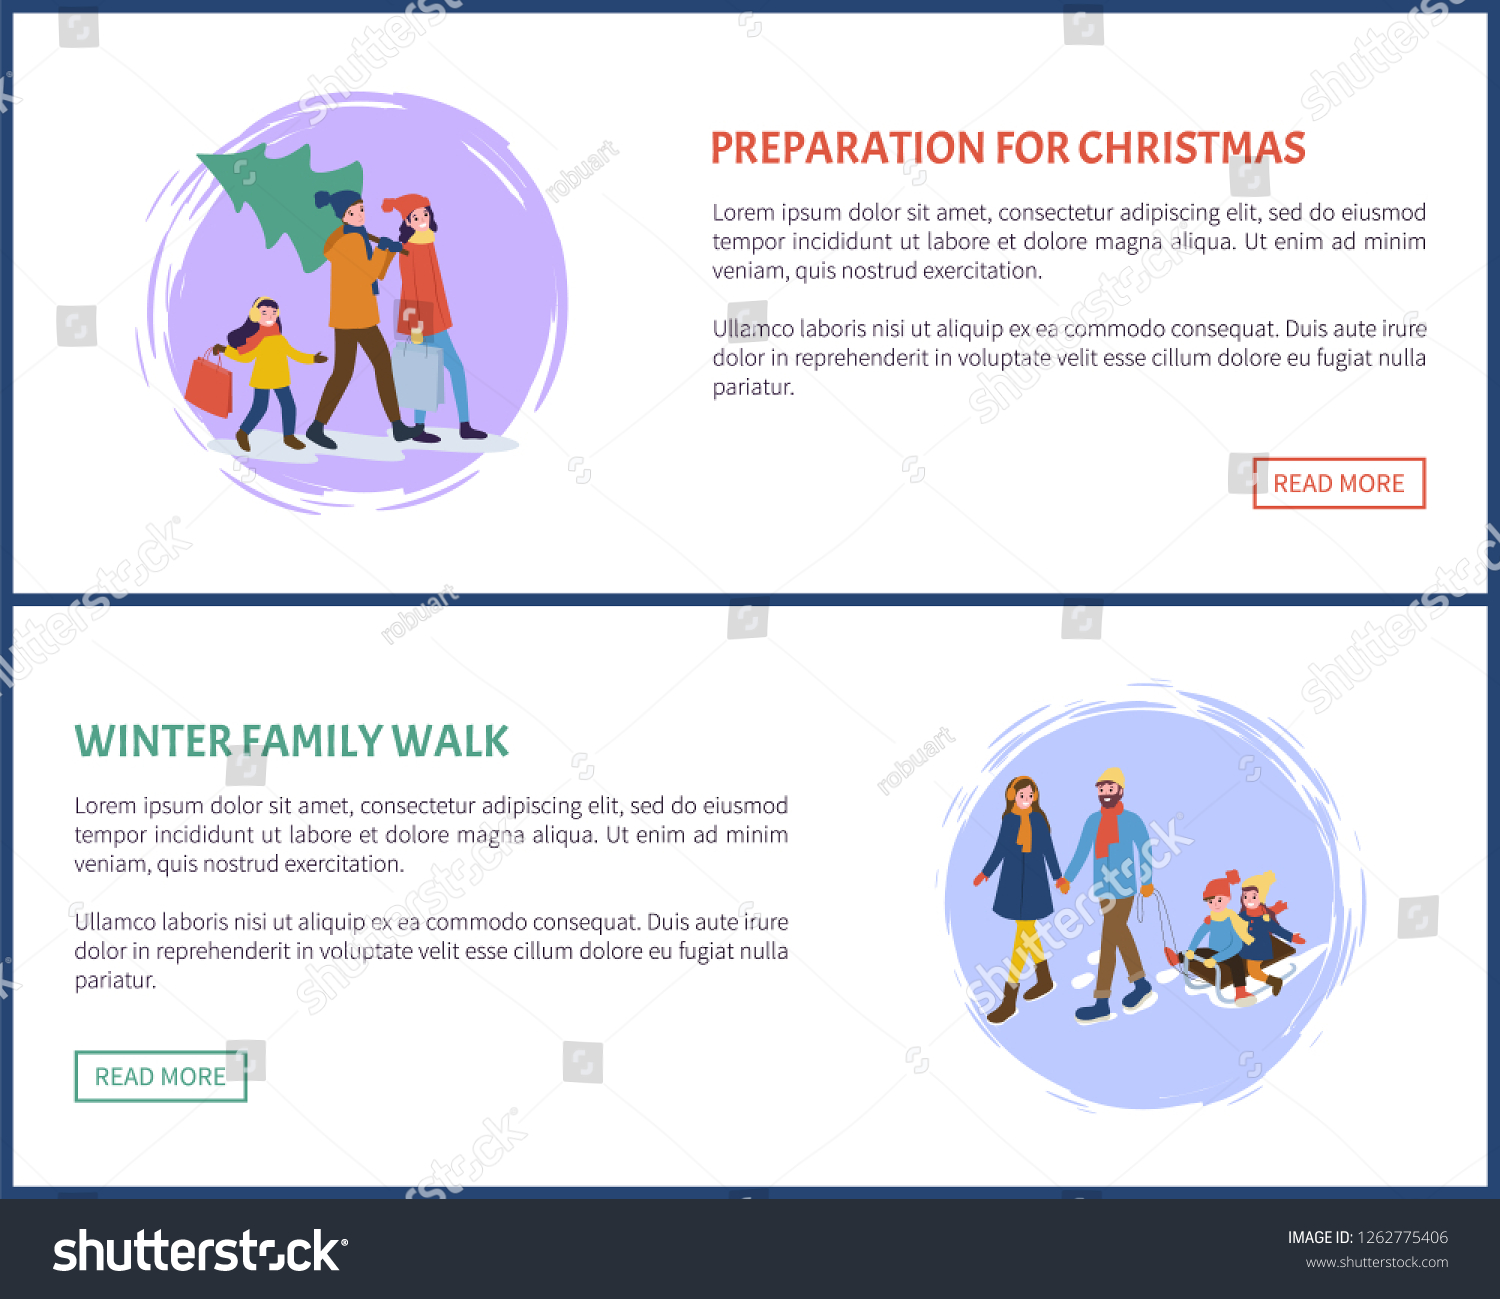 dc9448640 Preparation Christmas Winter Holidays Set Vector Stock Vector ...